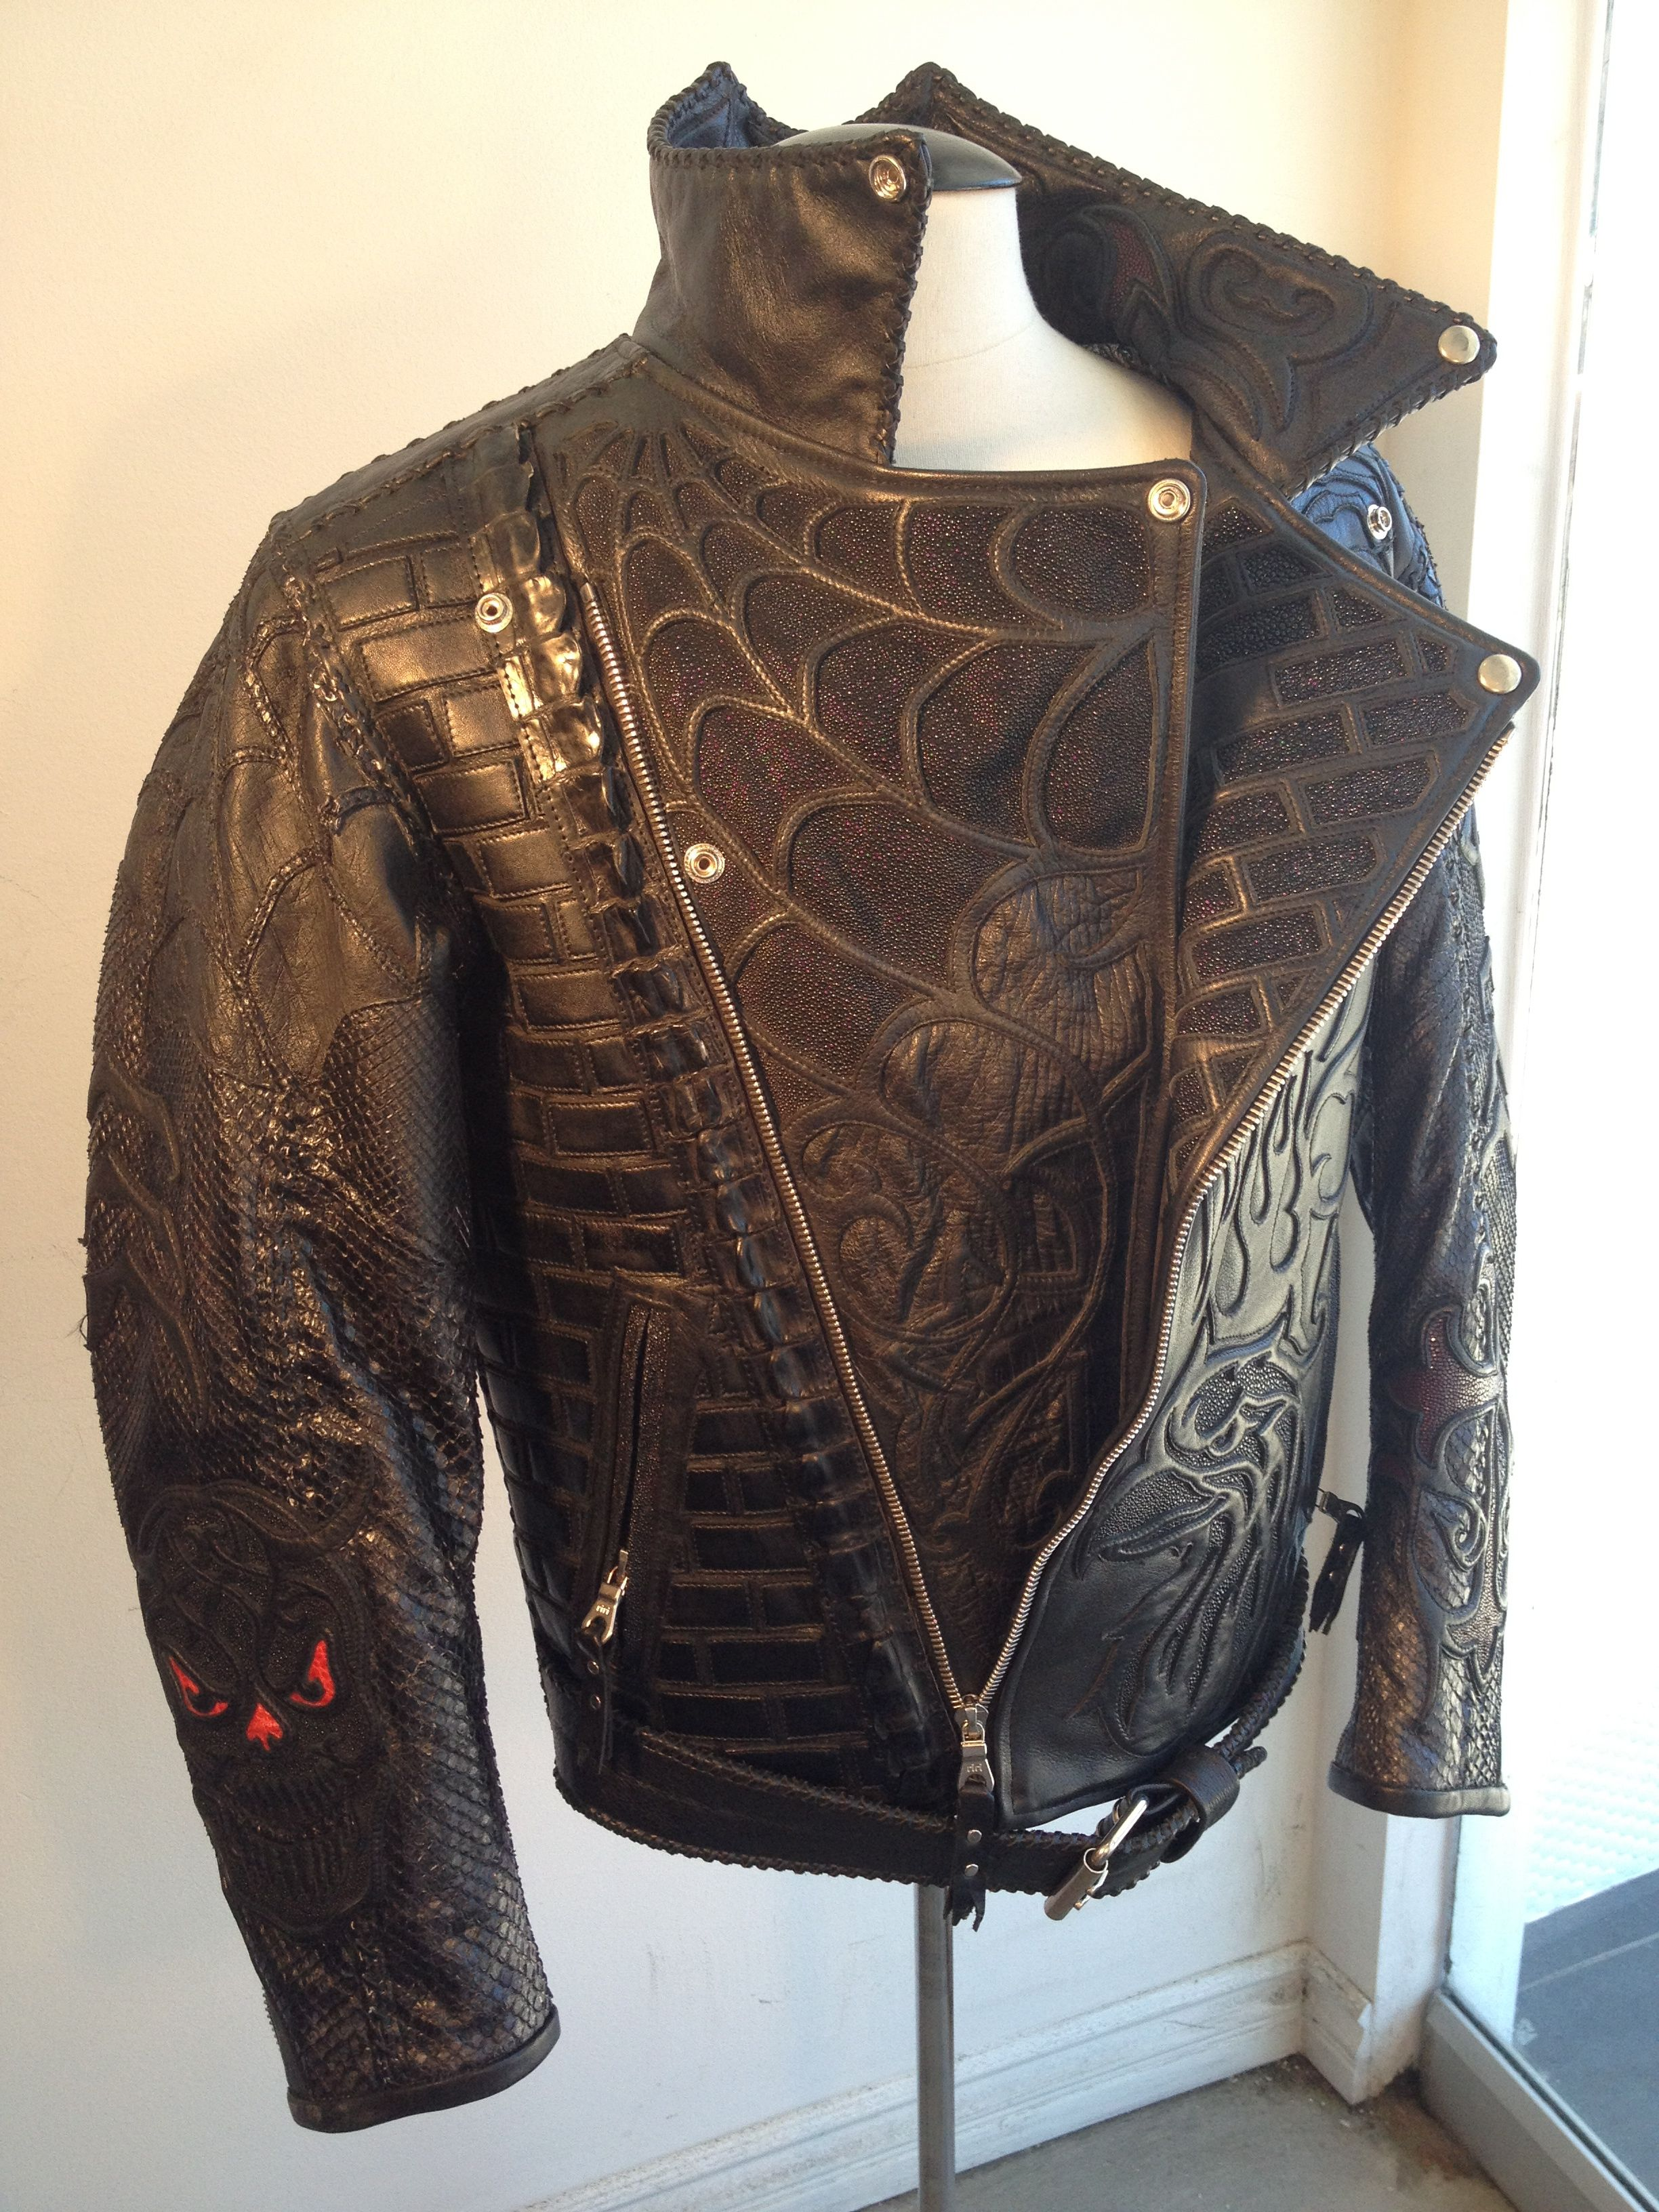 Sting Ray Spiderweb. Handmade excellence. Jacket by Logan